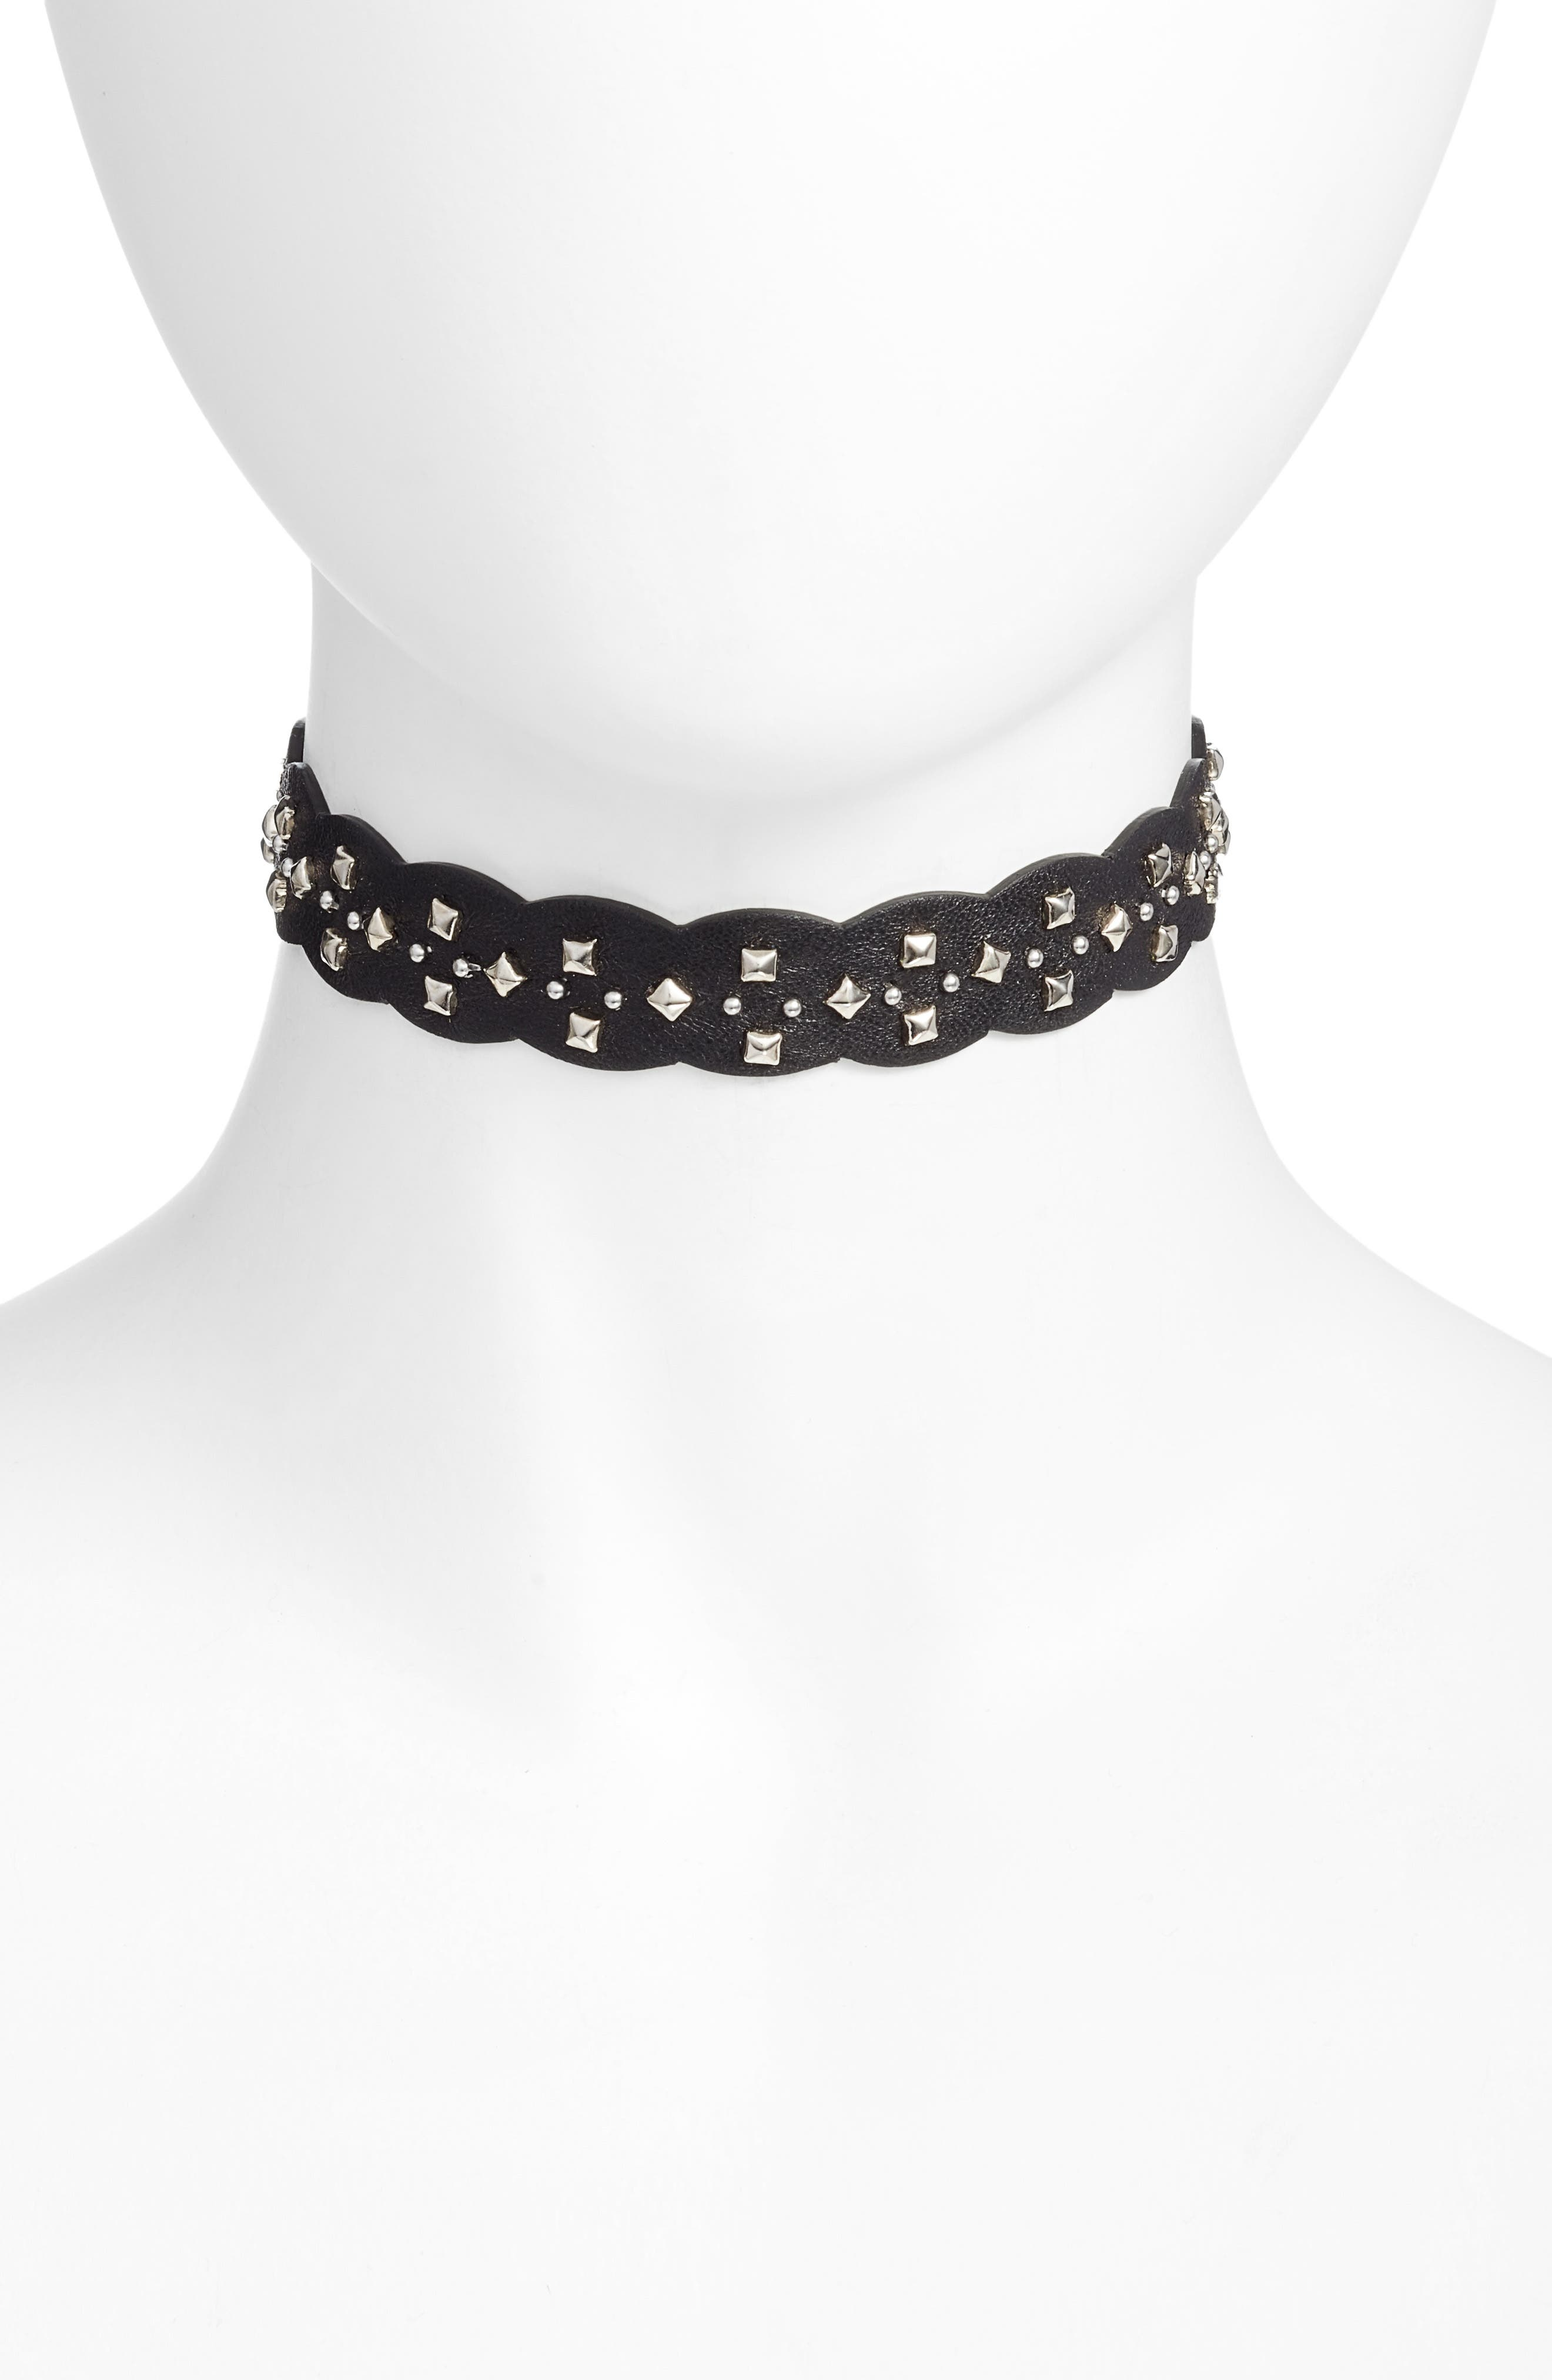 Rebecca Minkoff Leather Choker Necklace